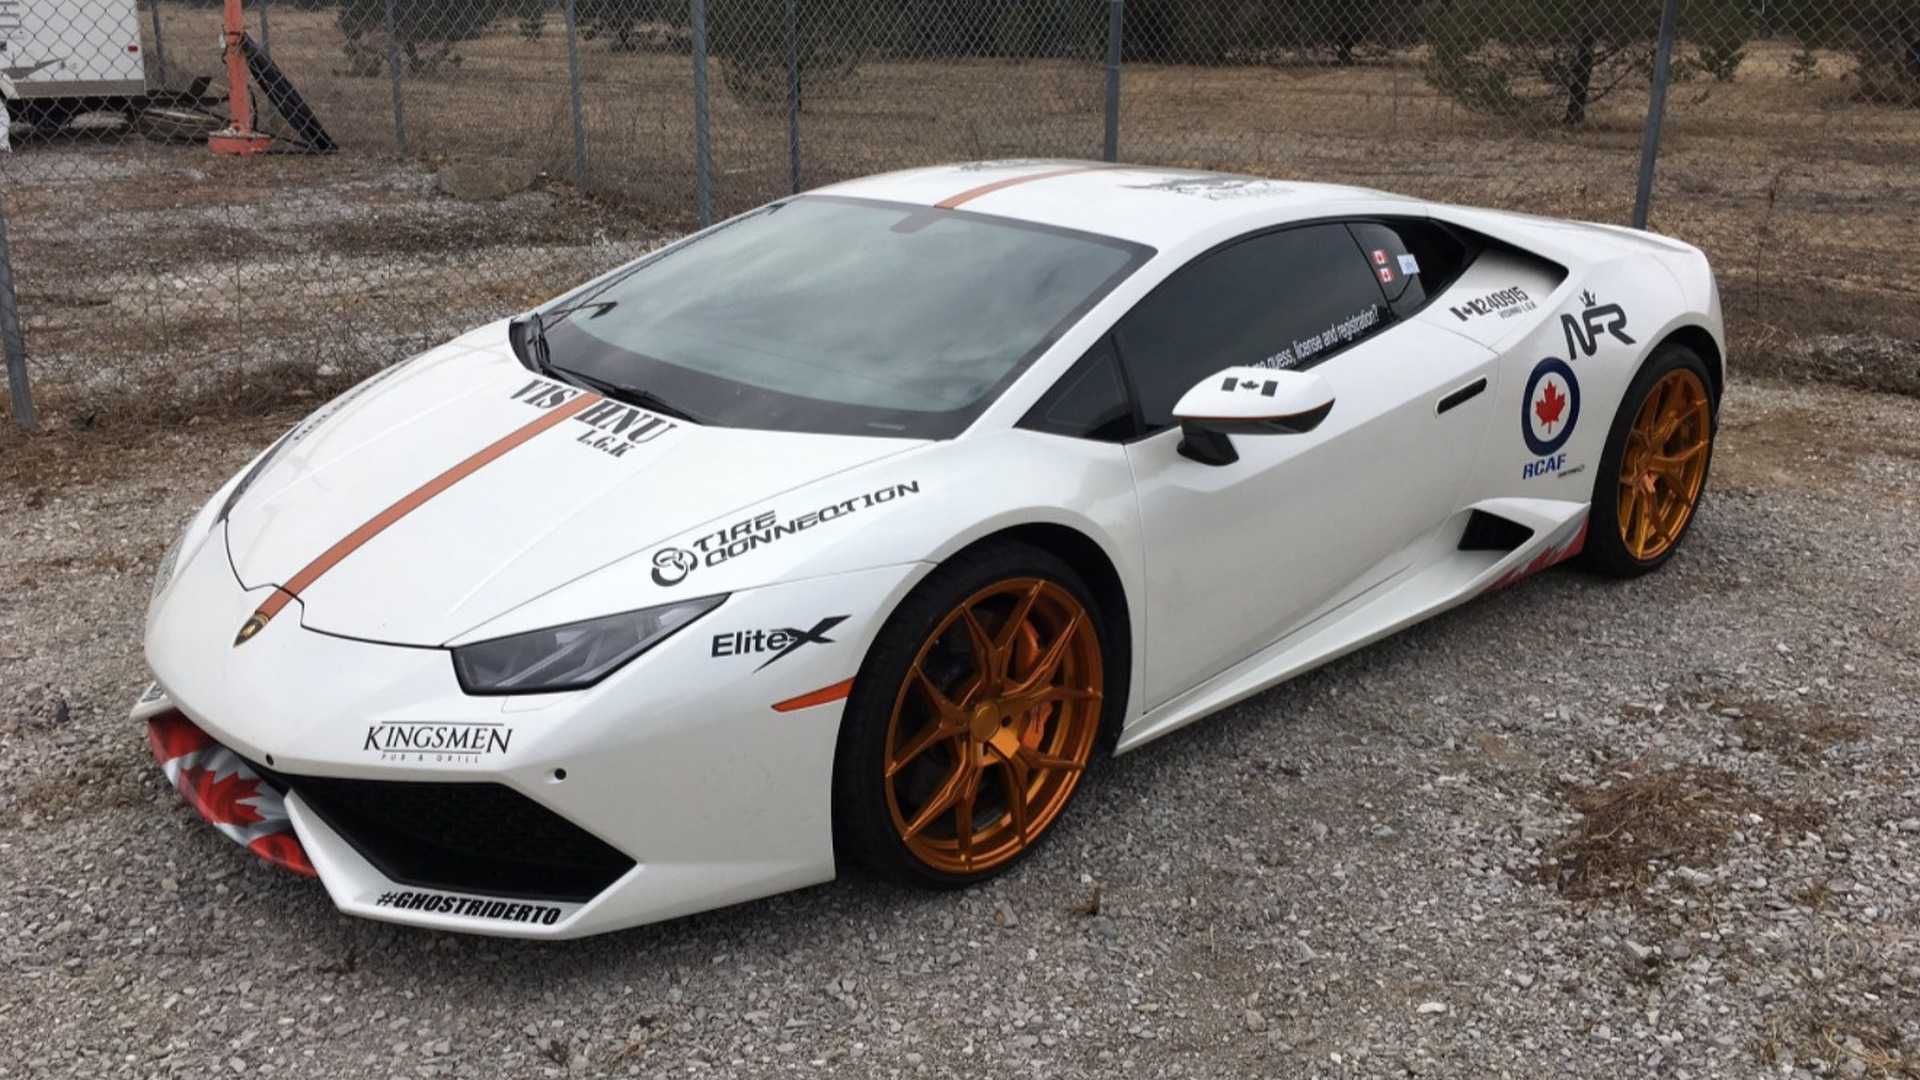 Dozen Exotic And Luxury Sports Cars Impounded For Street Racing